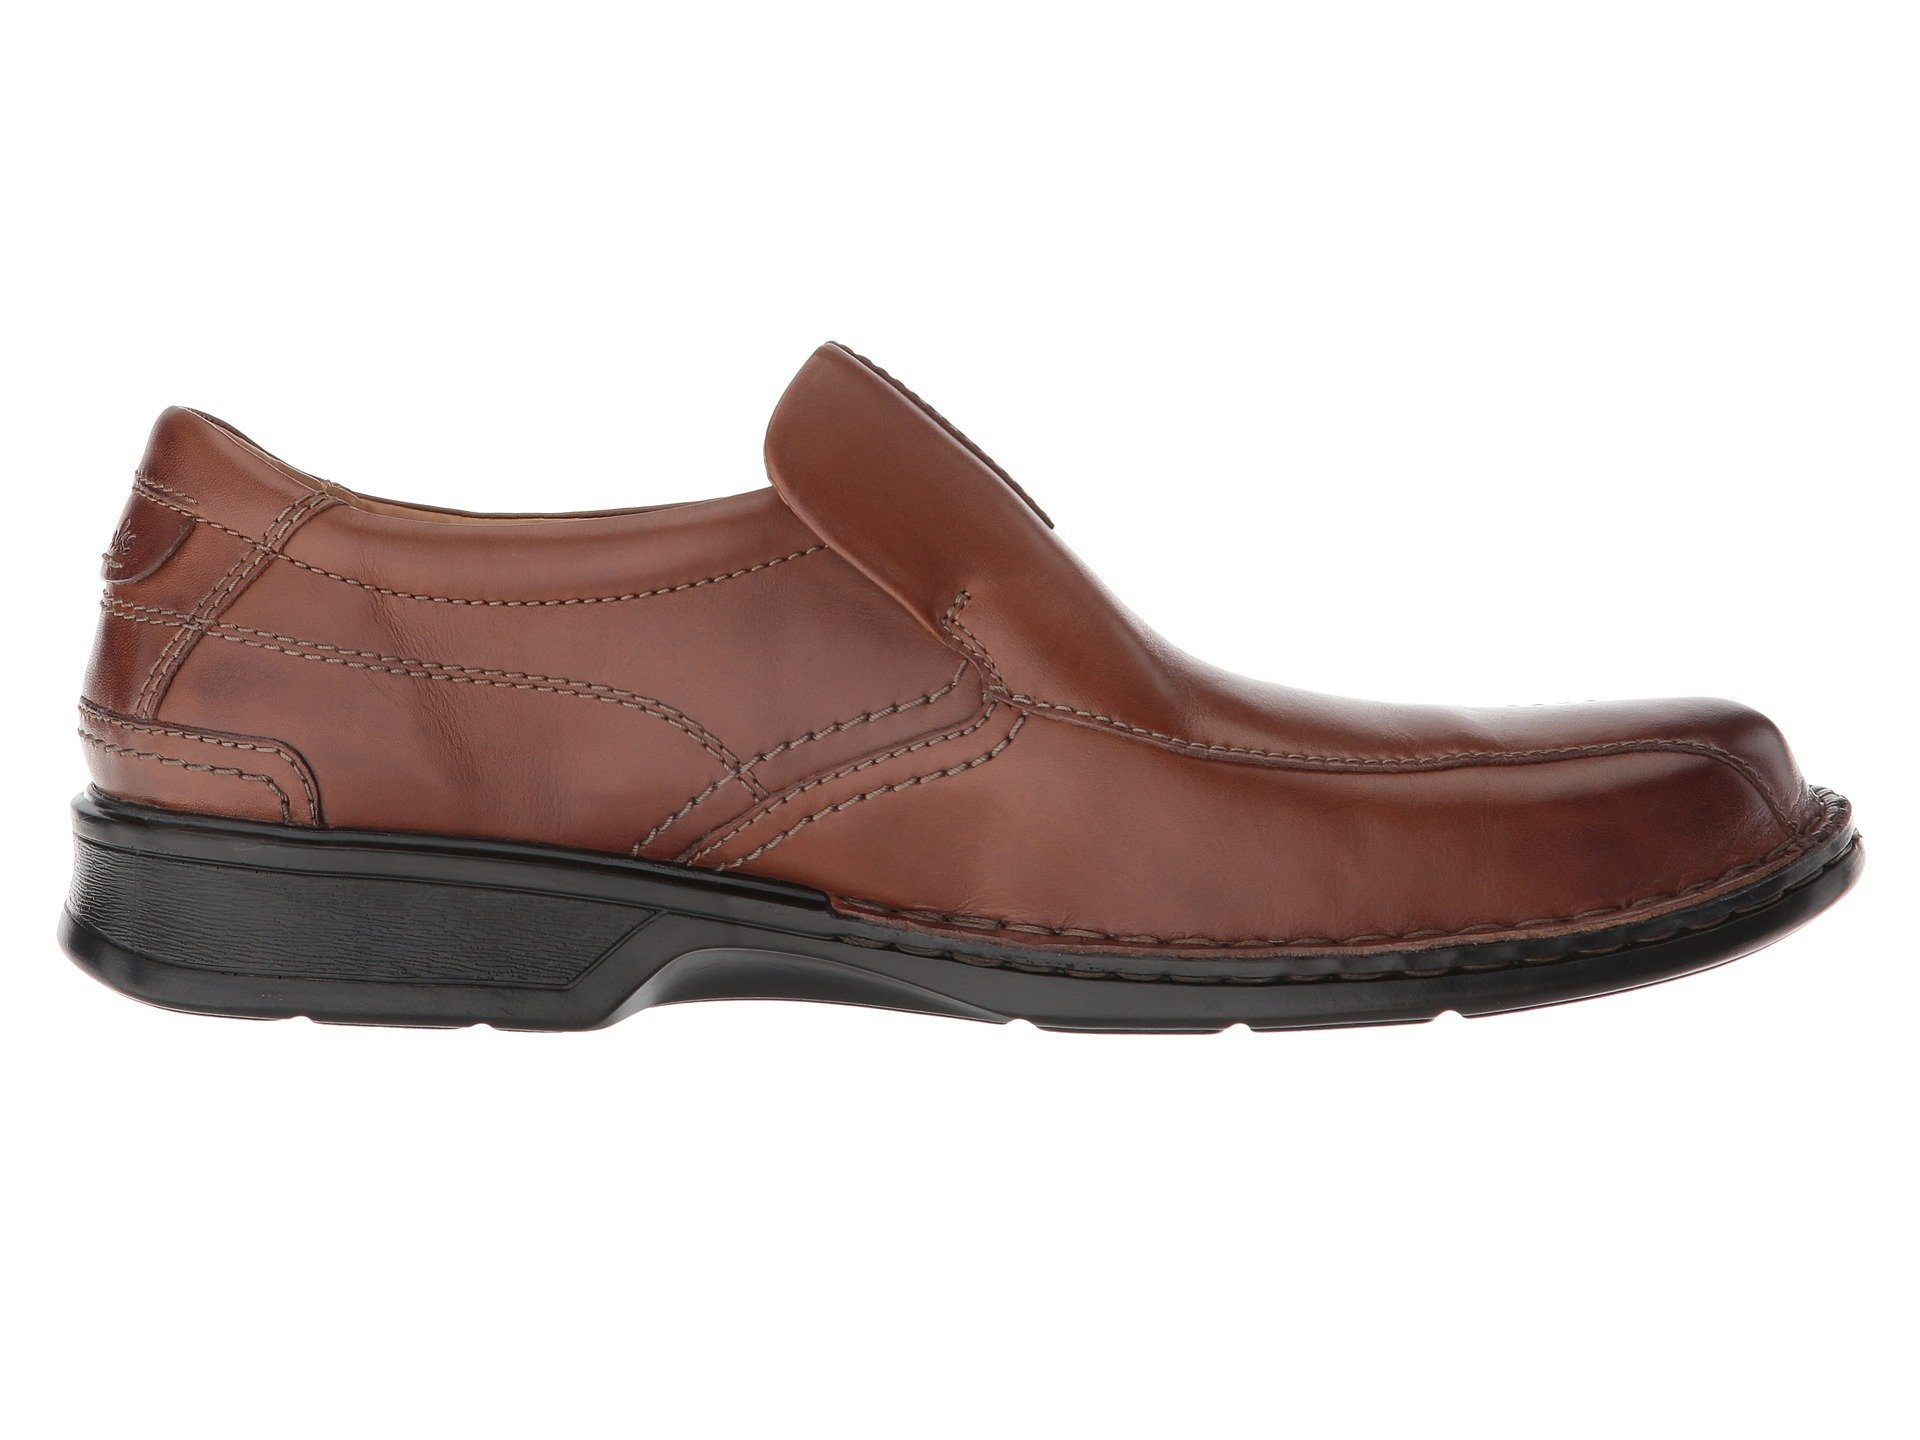 Clarks Step Clarks Escalade Leather Escalade Brown trrqS